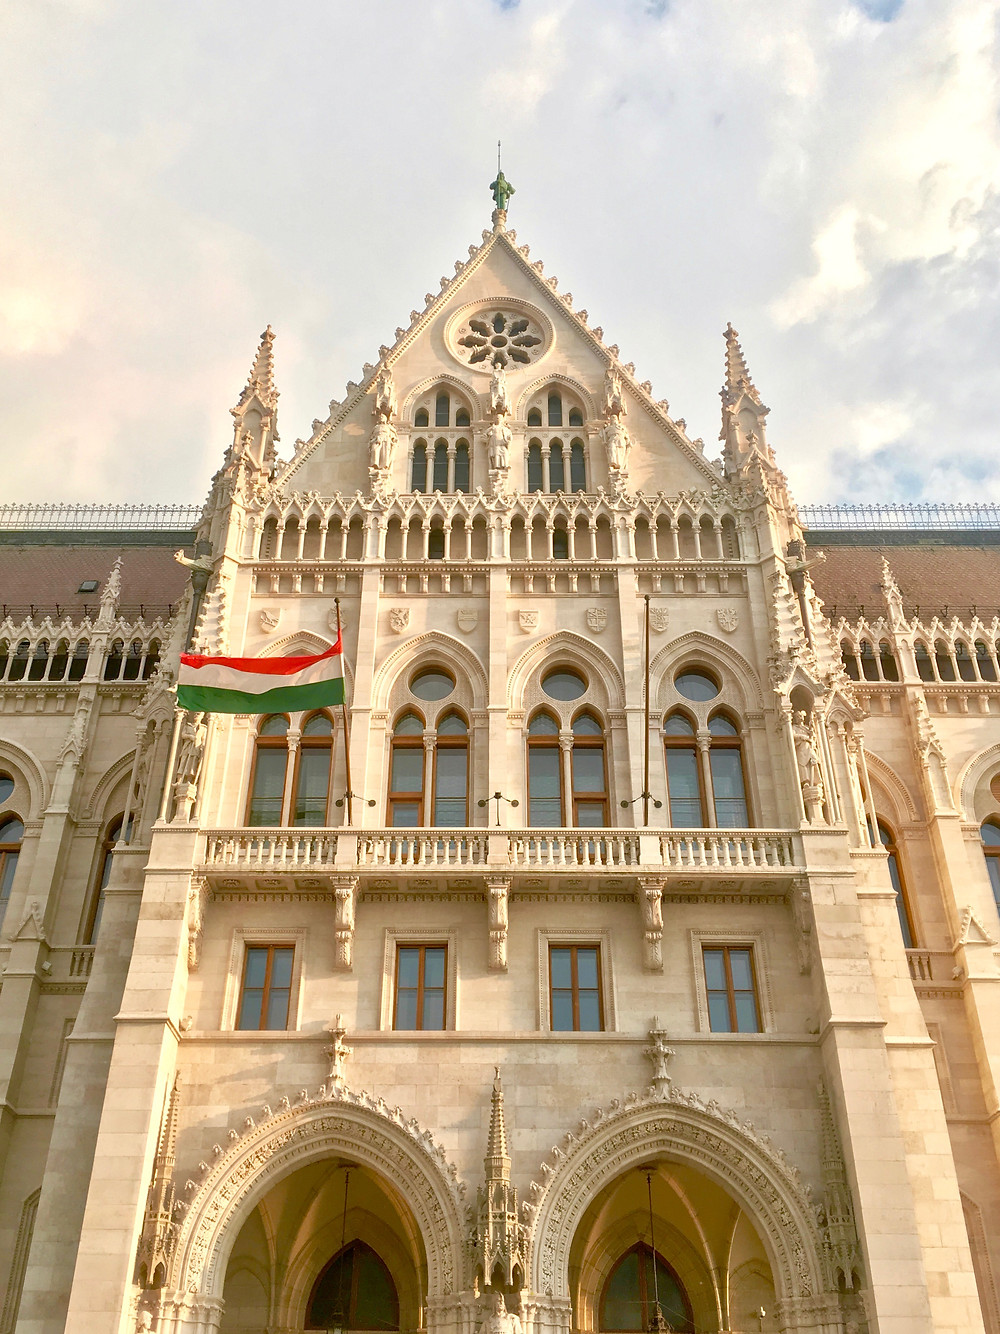 Looking up at the facade of the Parliament Building's main entrance in Budapest under a cloudy sky